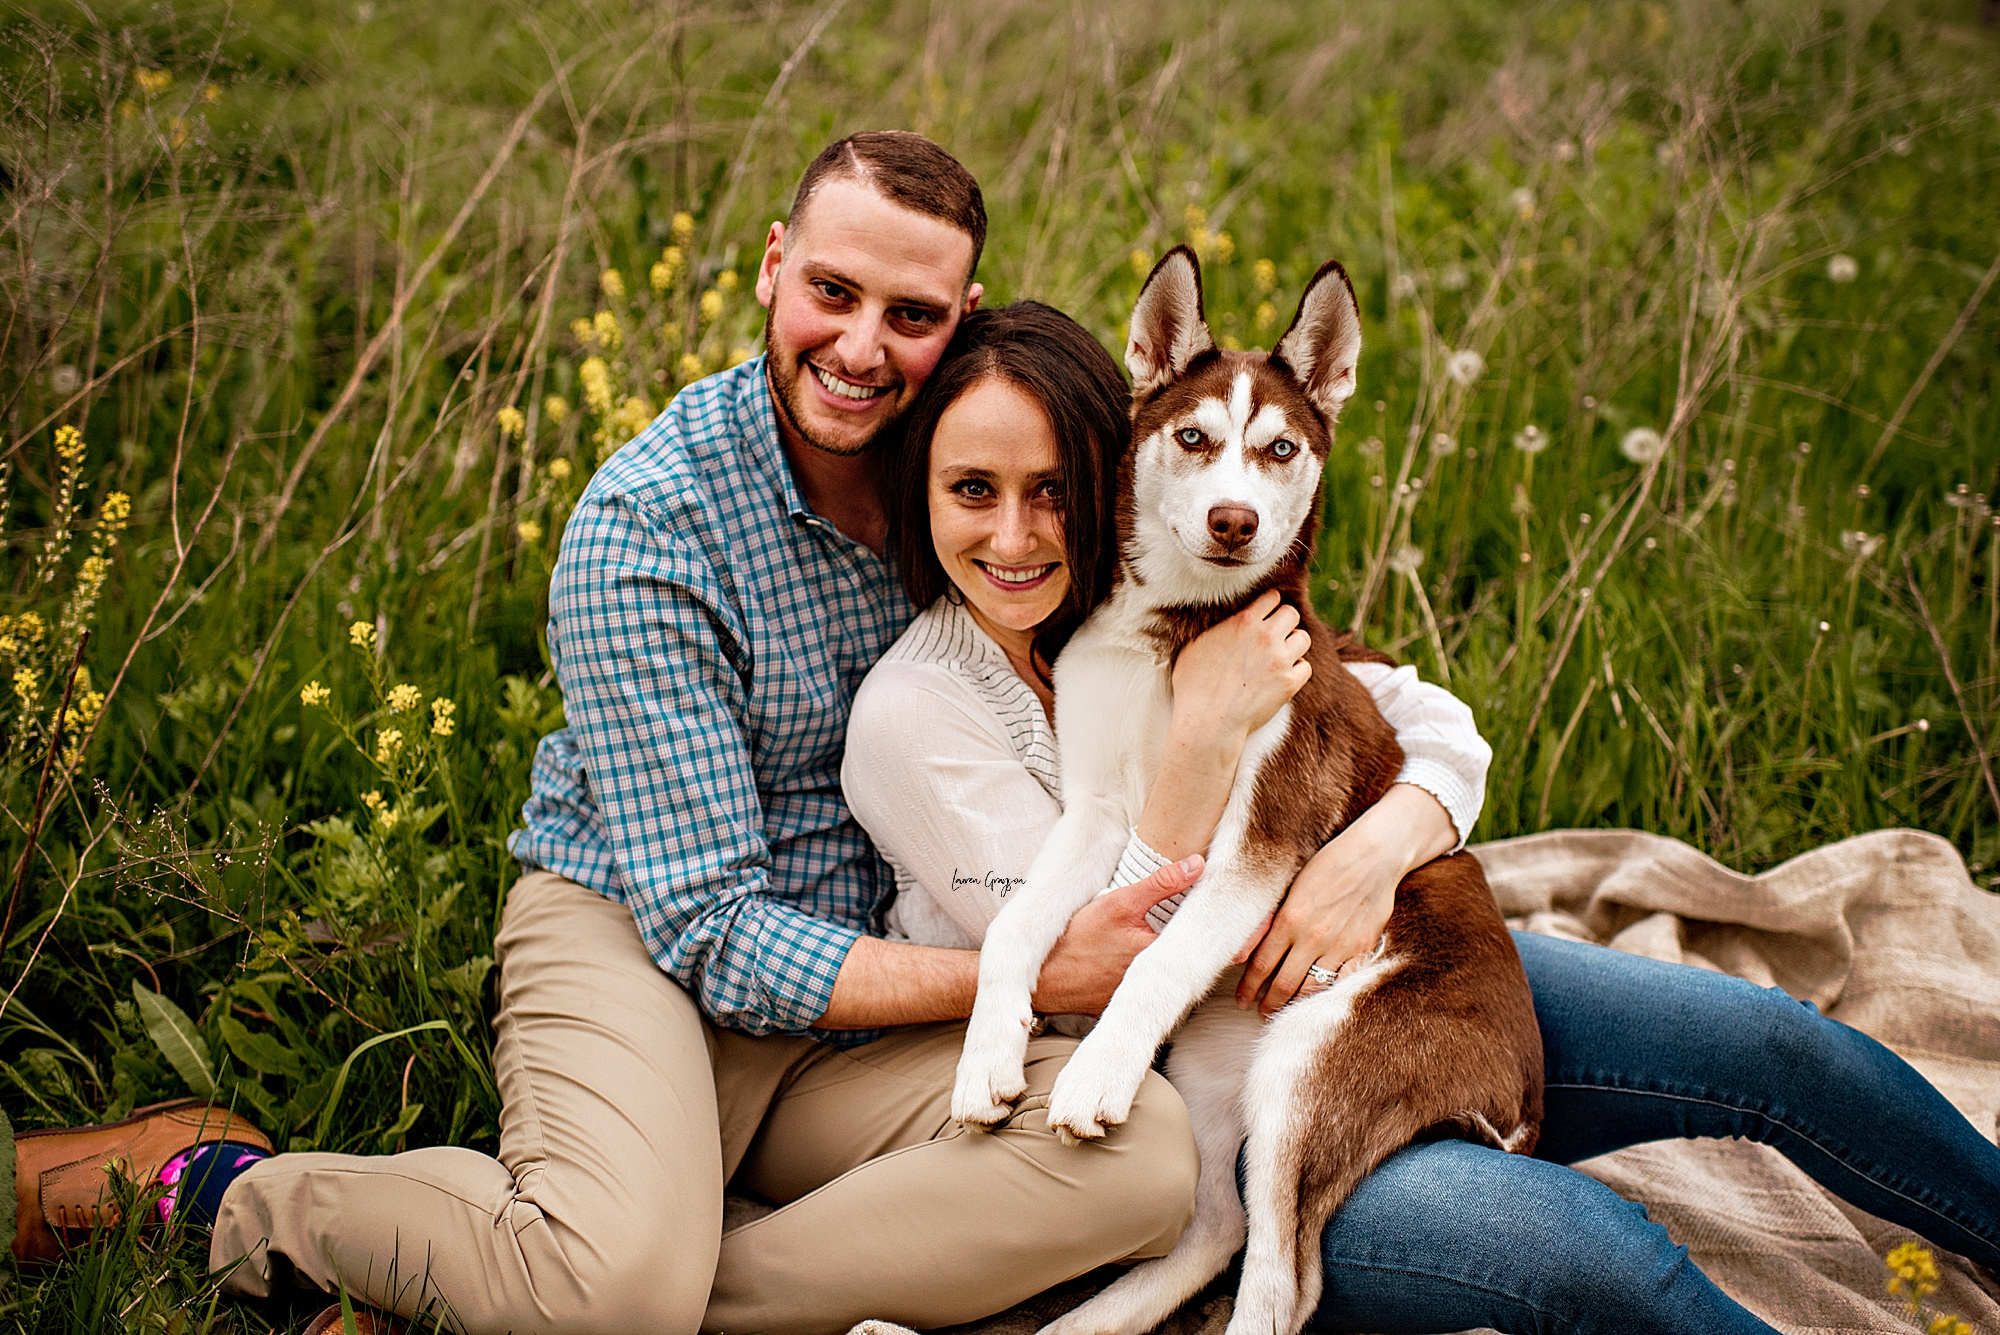 A Fun Couples Session with Dog at the Springfield Bog Metro Park by Cleveland Ohio Photographer Lauren Grayson Photography